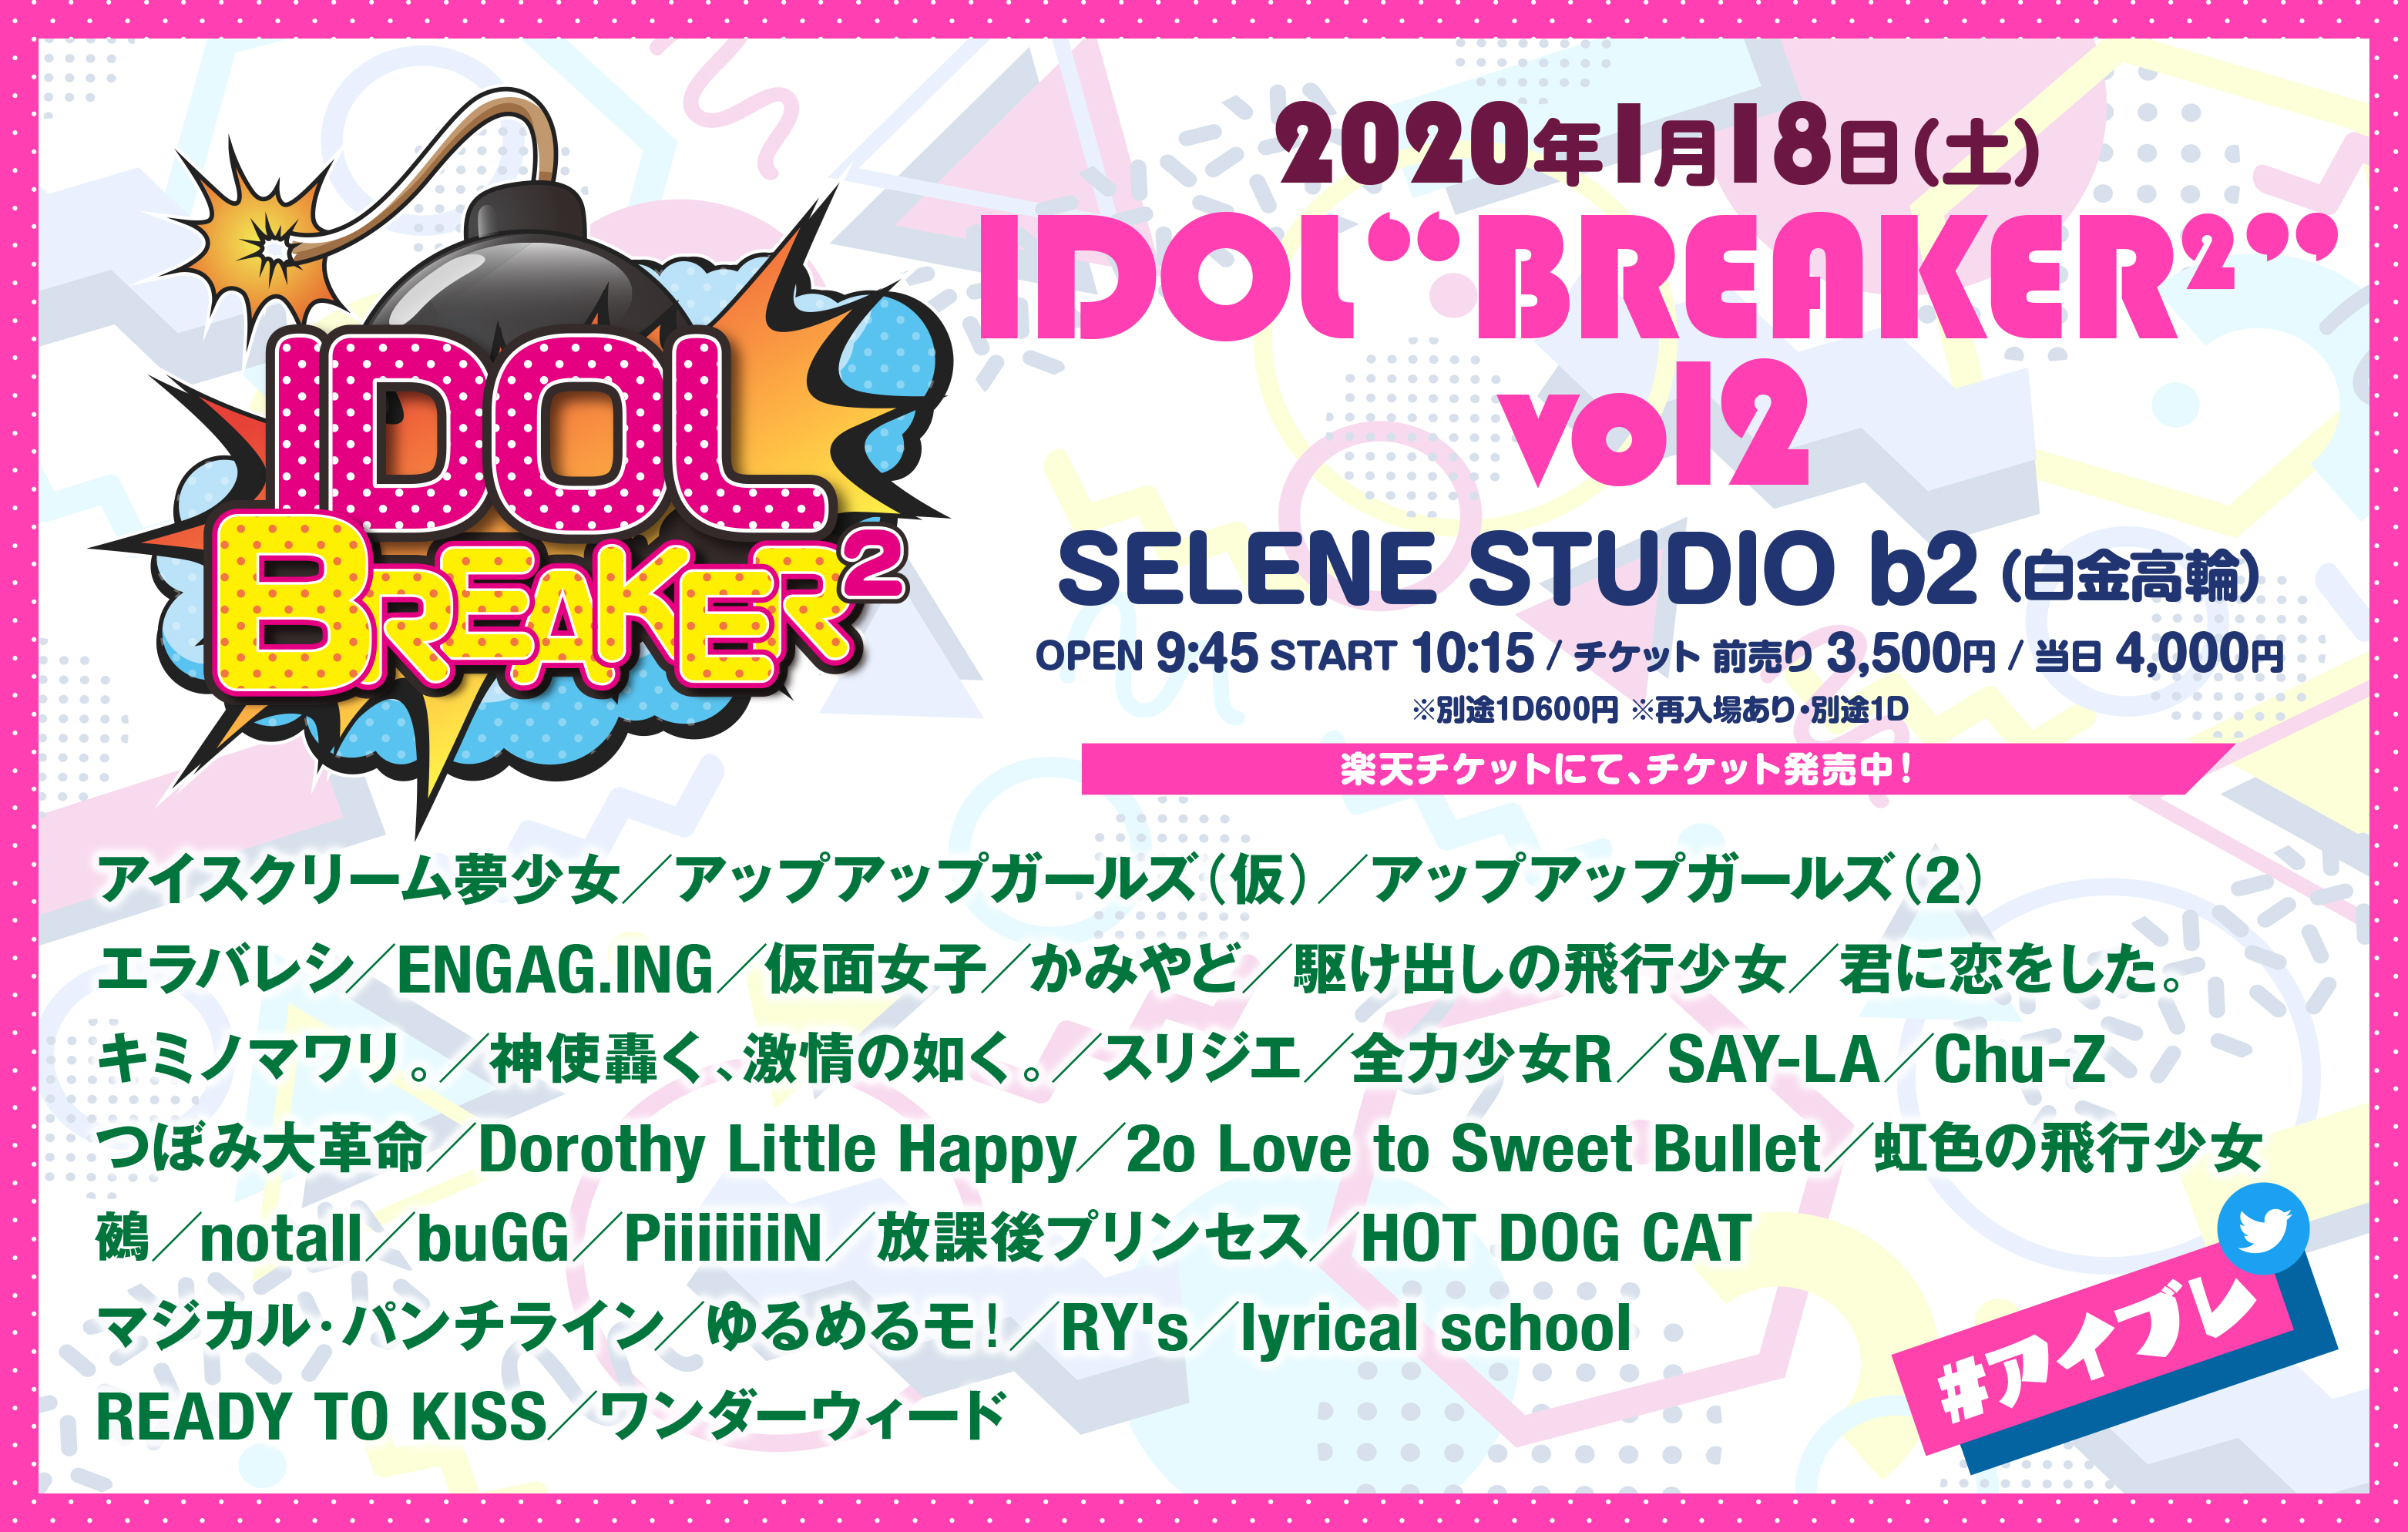 IDOL BREAKER Vol.2